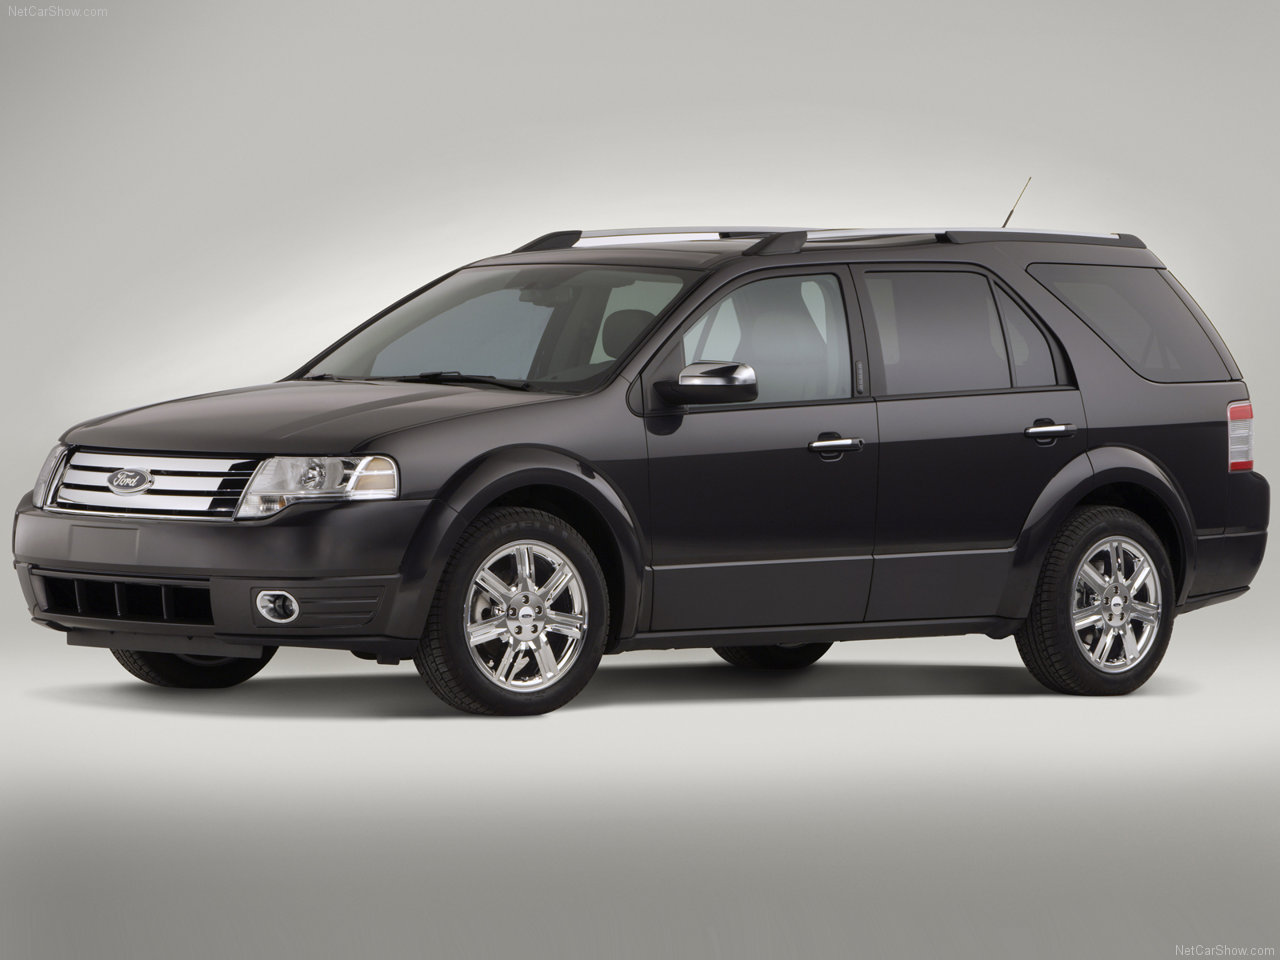 Ford Taurus 2008 photo - 7